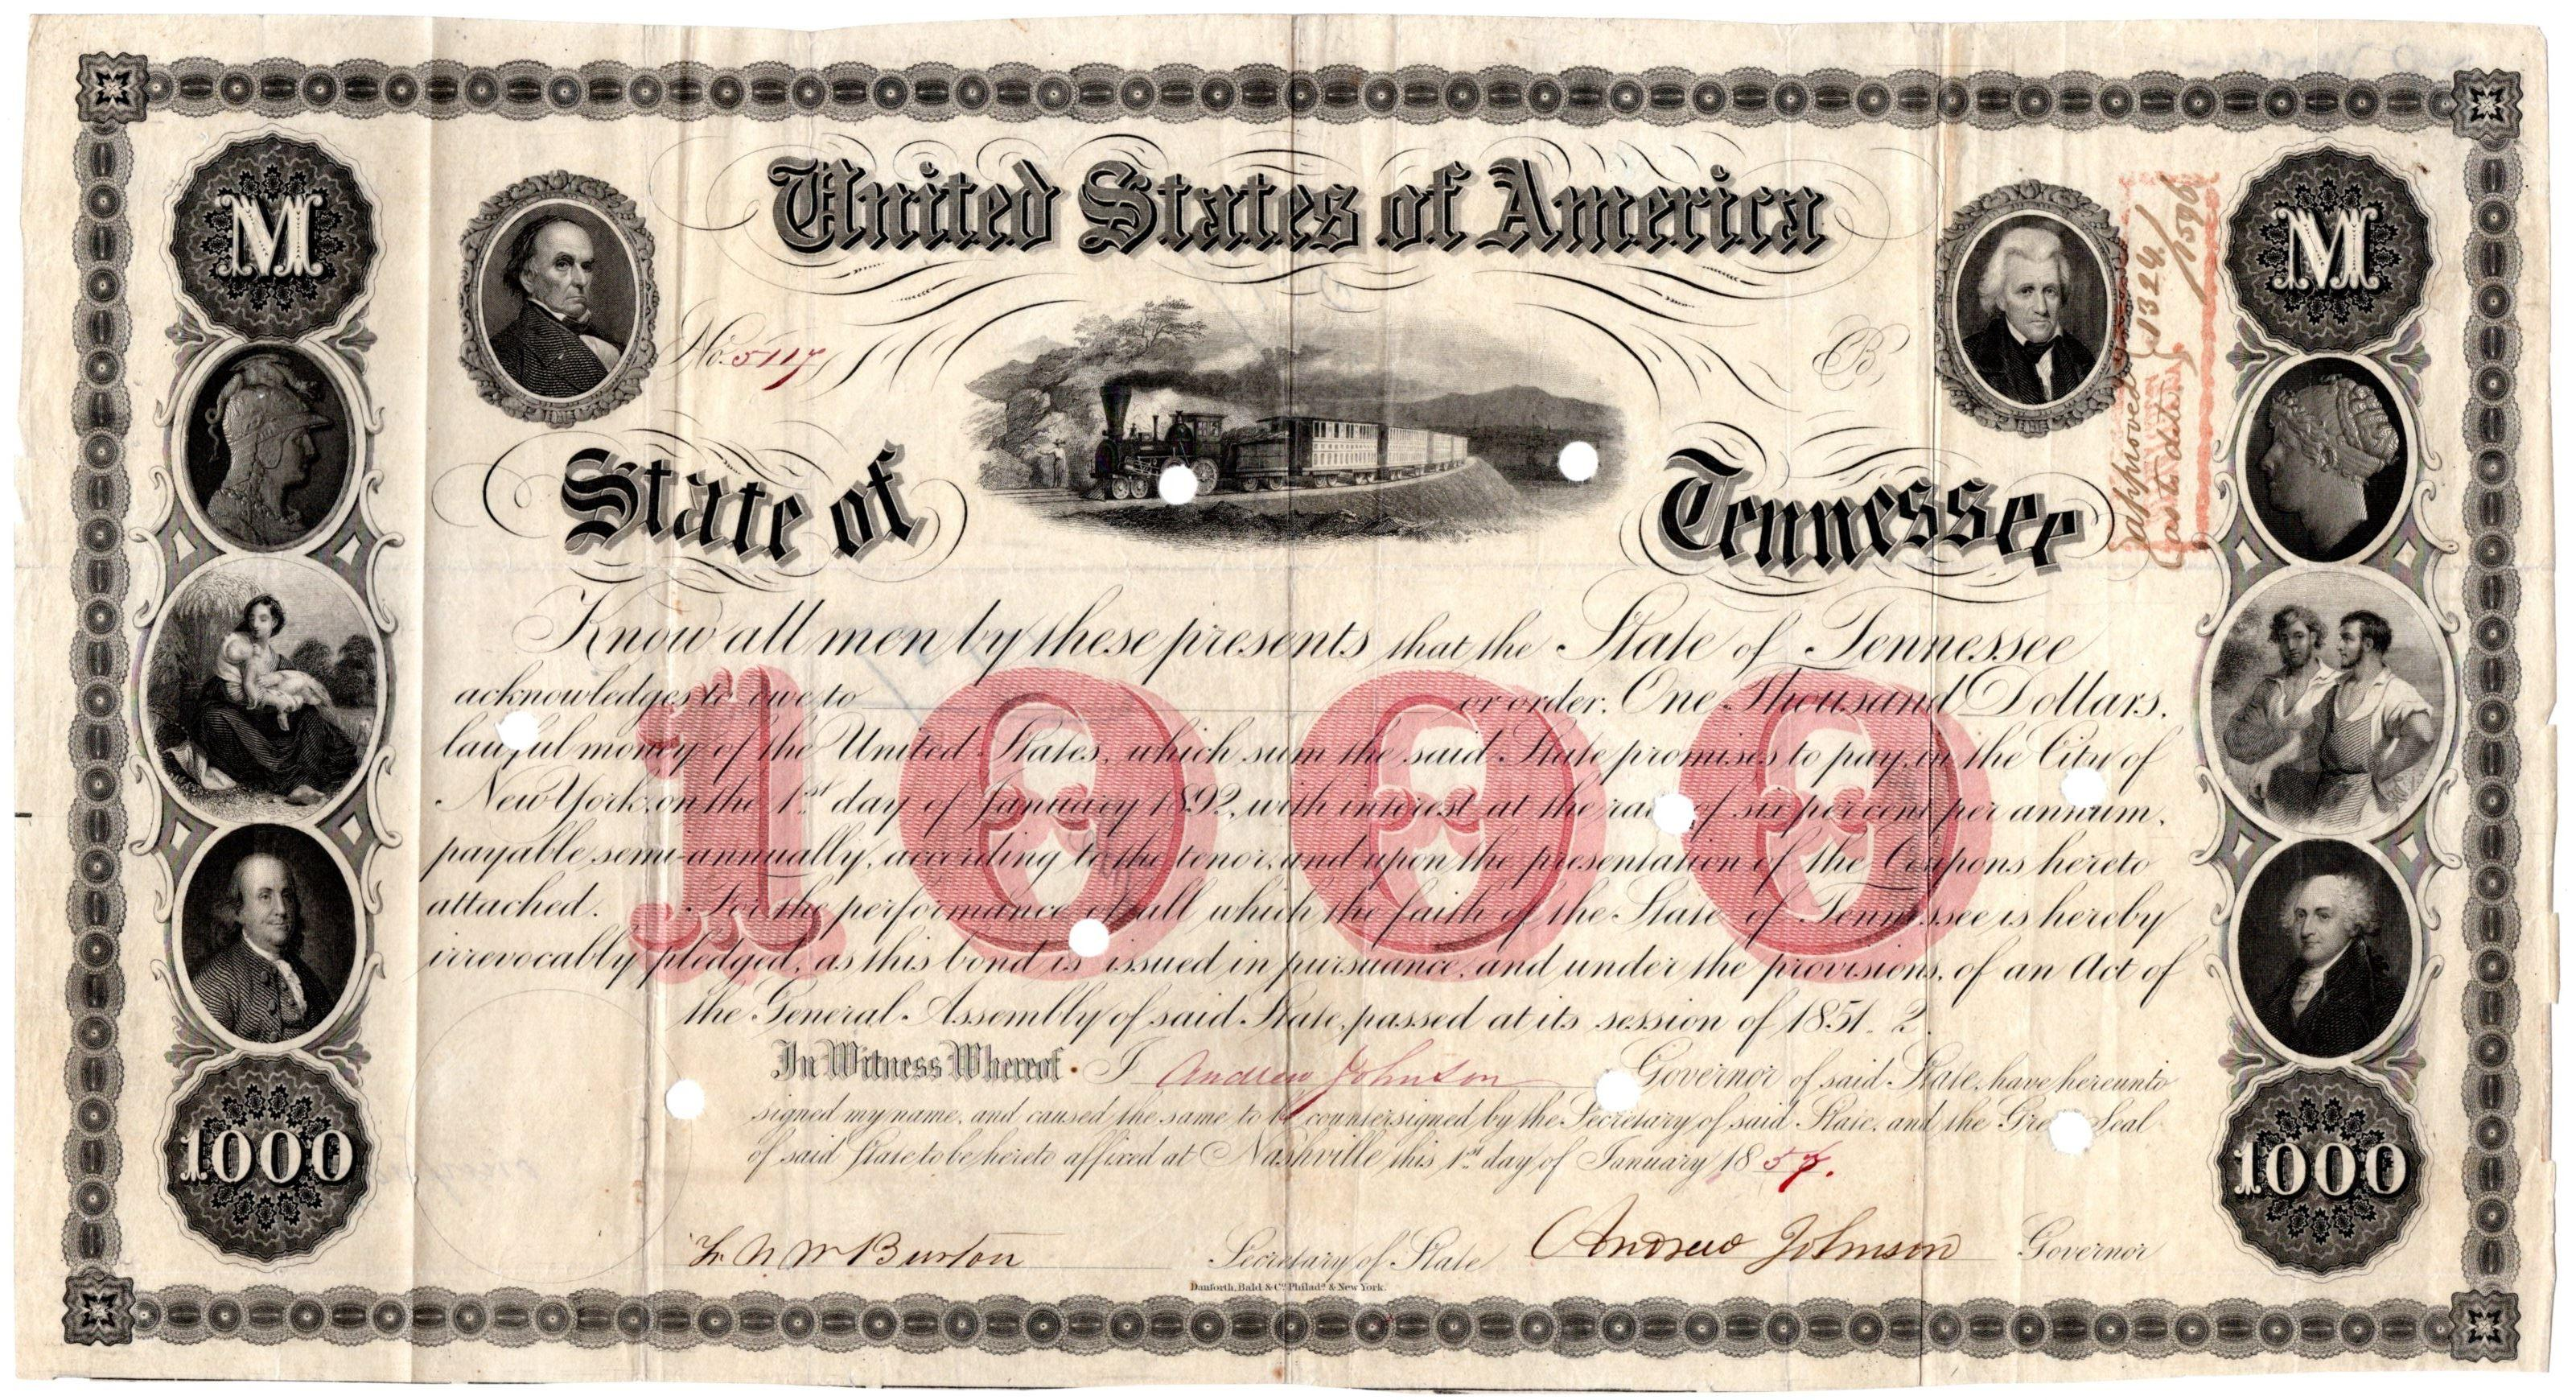 Andrew Johnson Tennessee Bond with Interesting Backstory